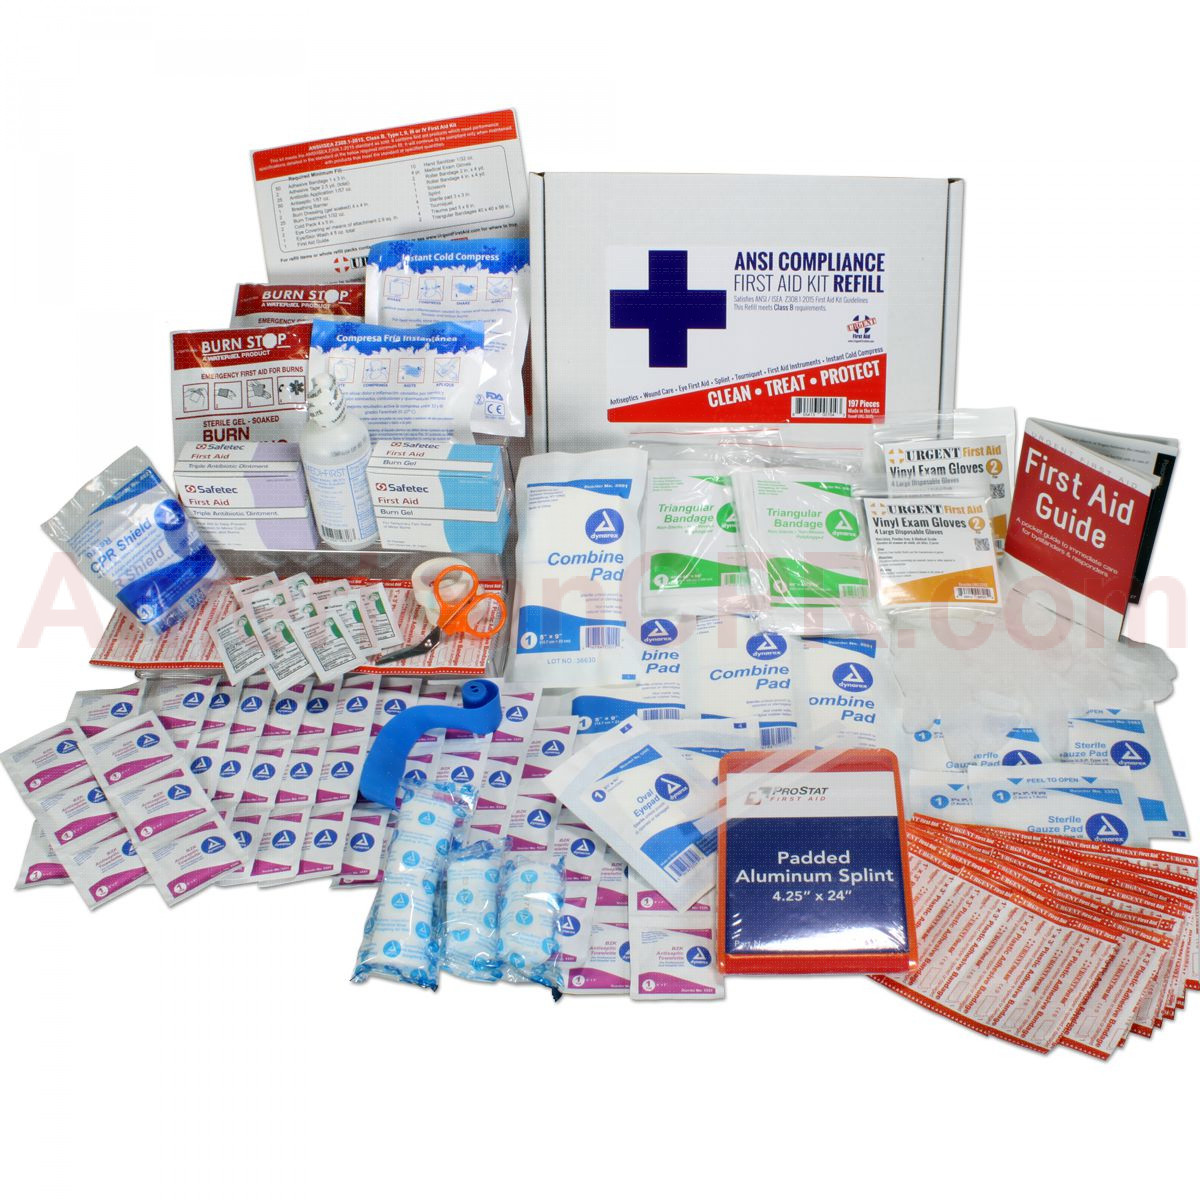 Bulk First Aid Kit Refill, 197 Pieces, ANSI B, 50 Person, Urgent First Aid